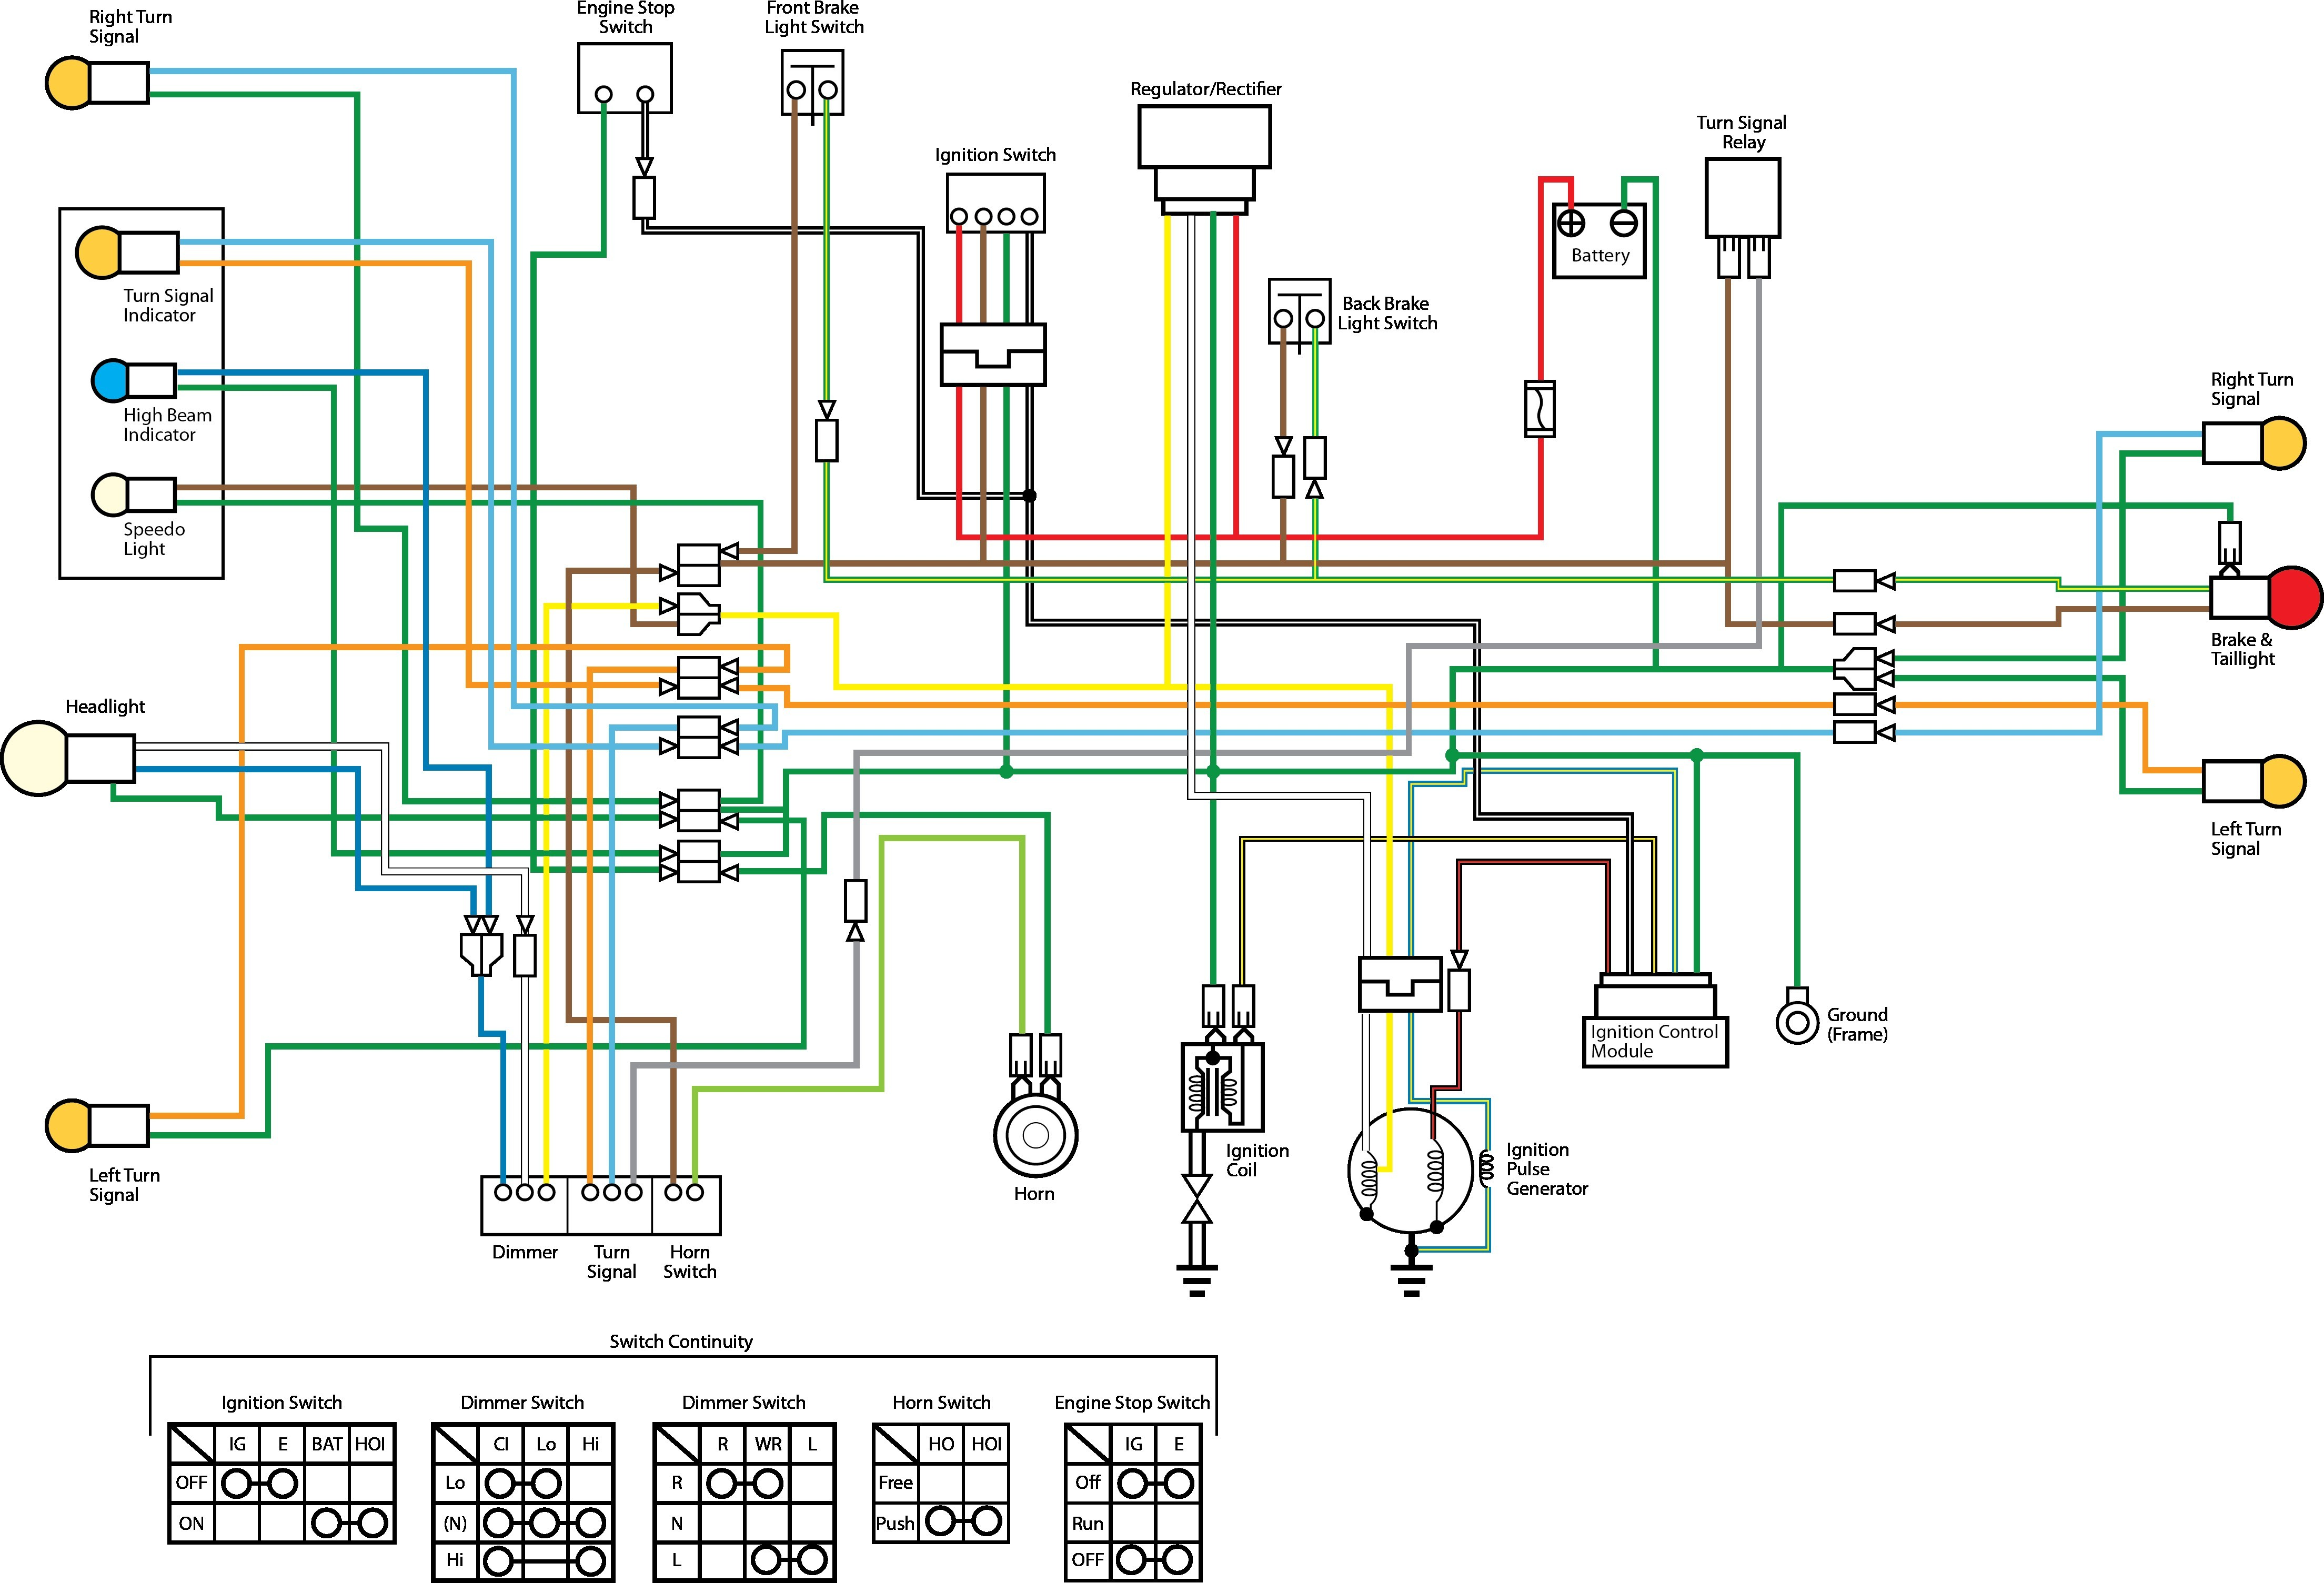 Xrm 110 Engine Diagram Honda Xrm 125 Wiring Diagram Hbphelp Of Xrm 110 Engine Diagram